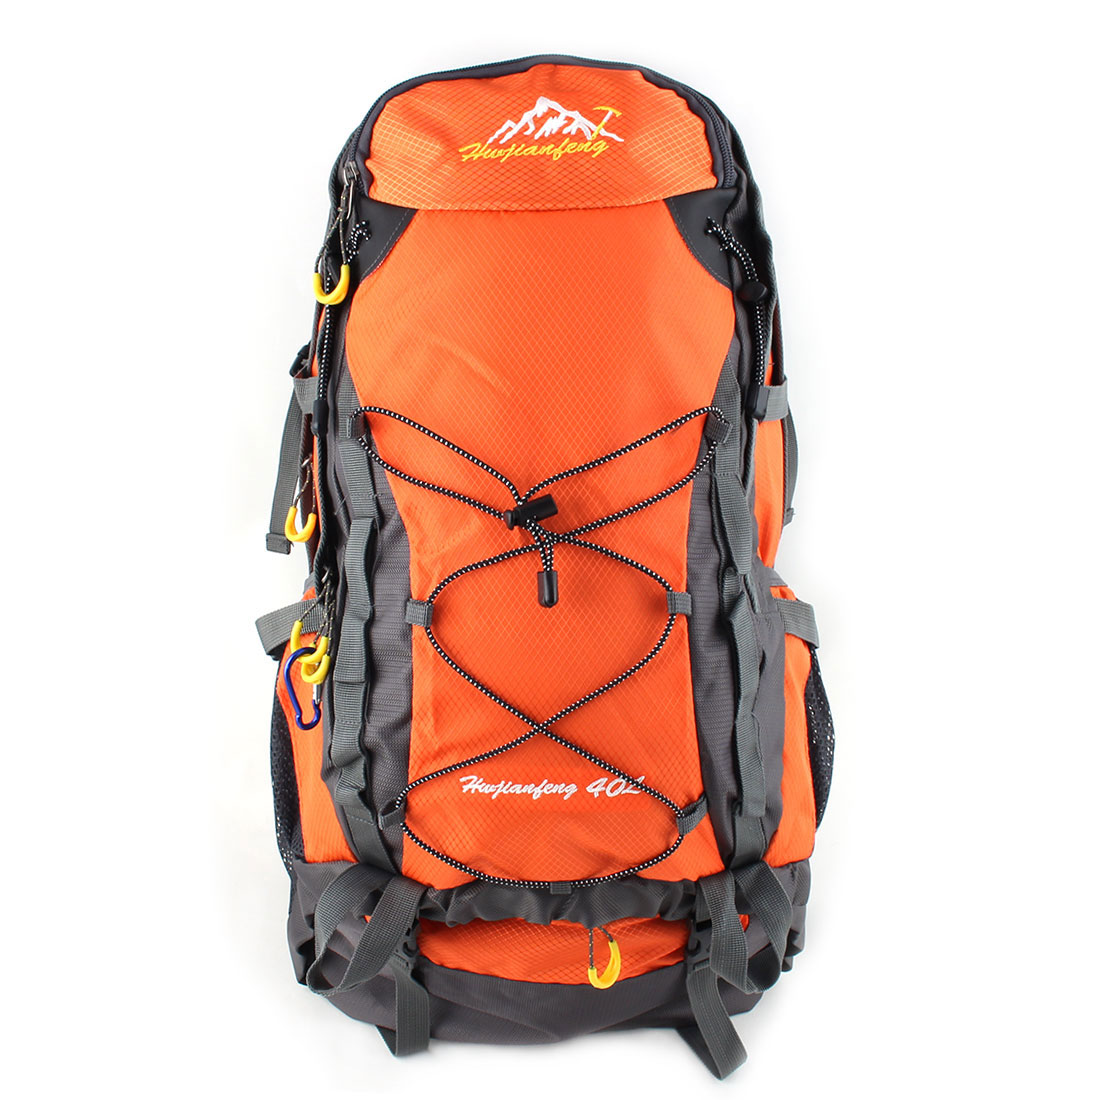 HWJIANFENG Authorized Pack Water Resistant Sport Bag Hiking Backpack Orange 40L